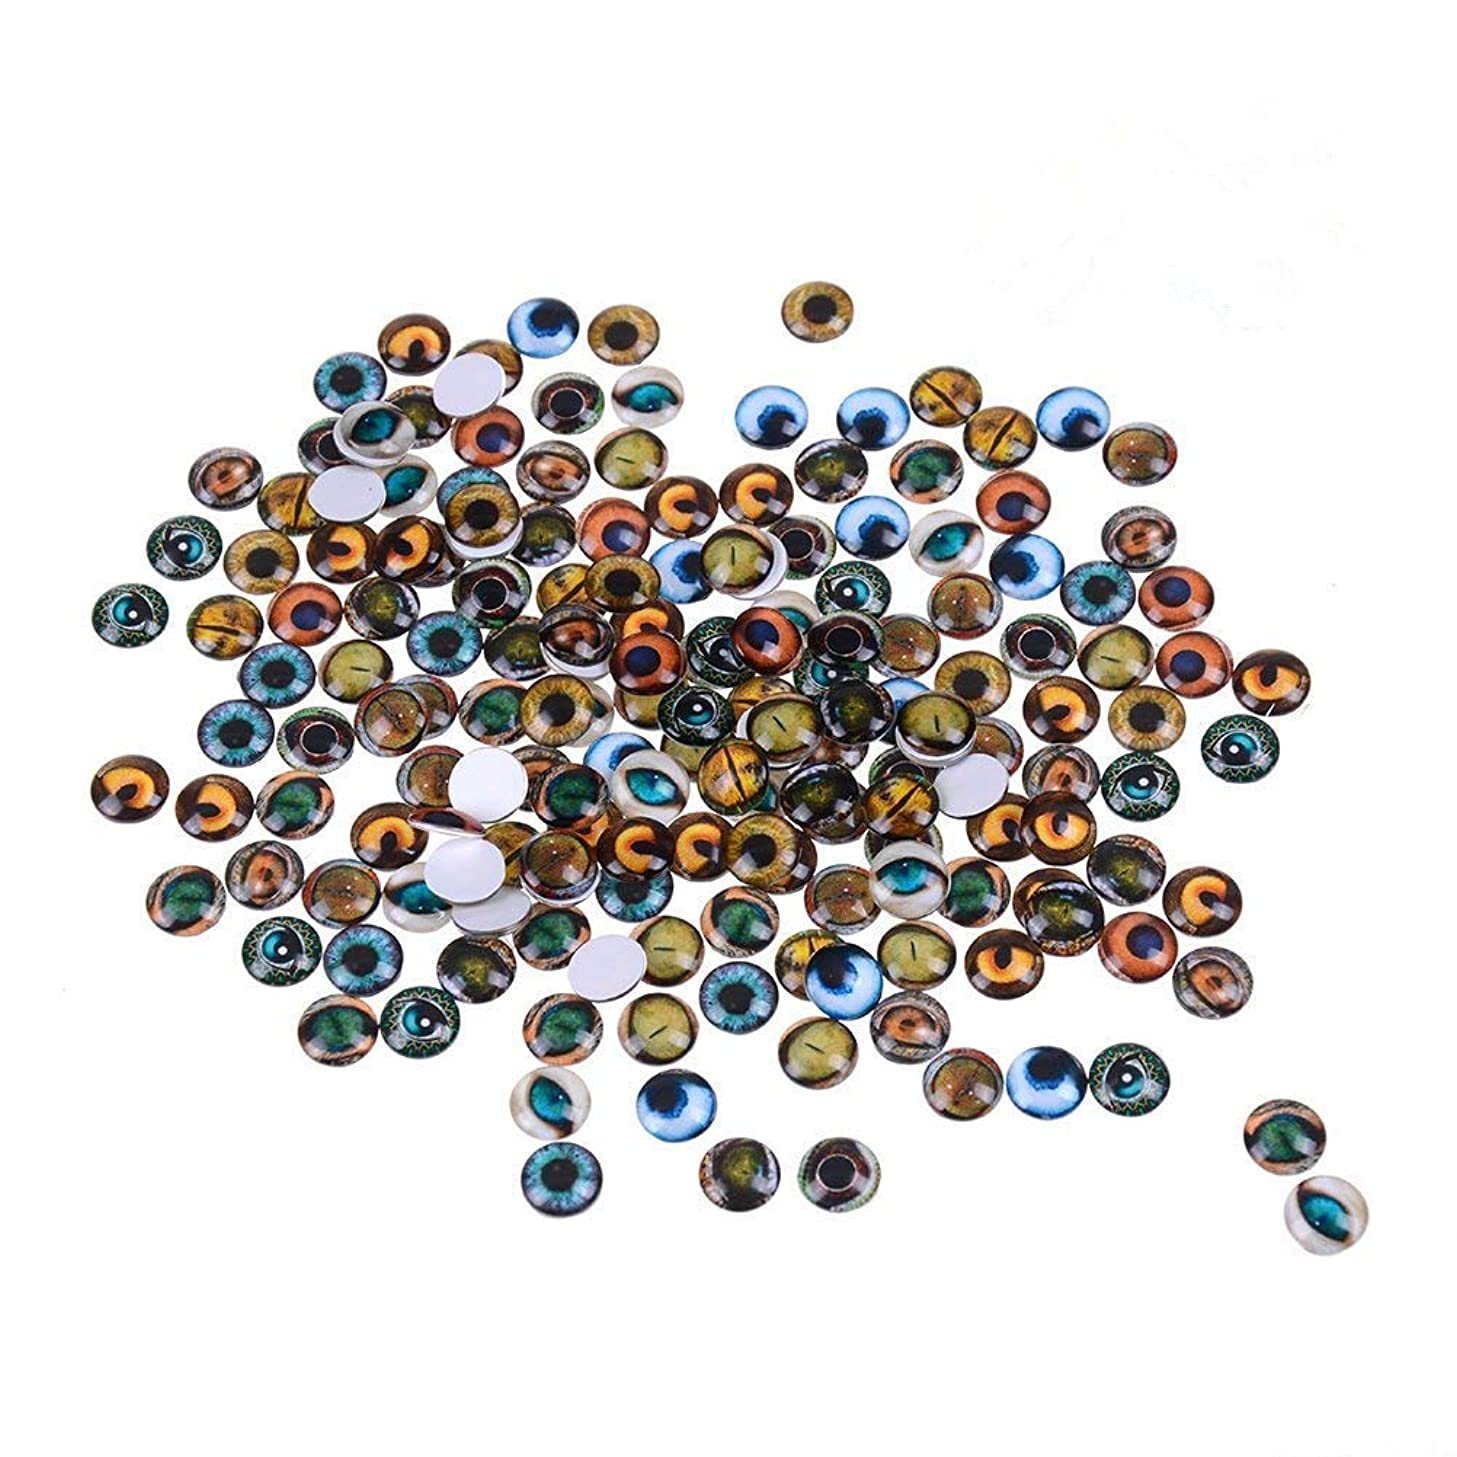 Mixed Color Lucky Evil Eye Glass Flatback Scrapbooking Dome Cabochons 12mm Dragon Eyes Accessory for Jewelry Pendant Settings 200PCS